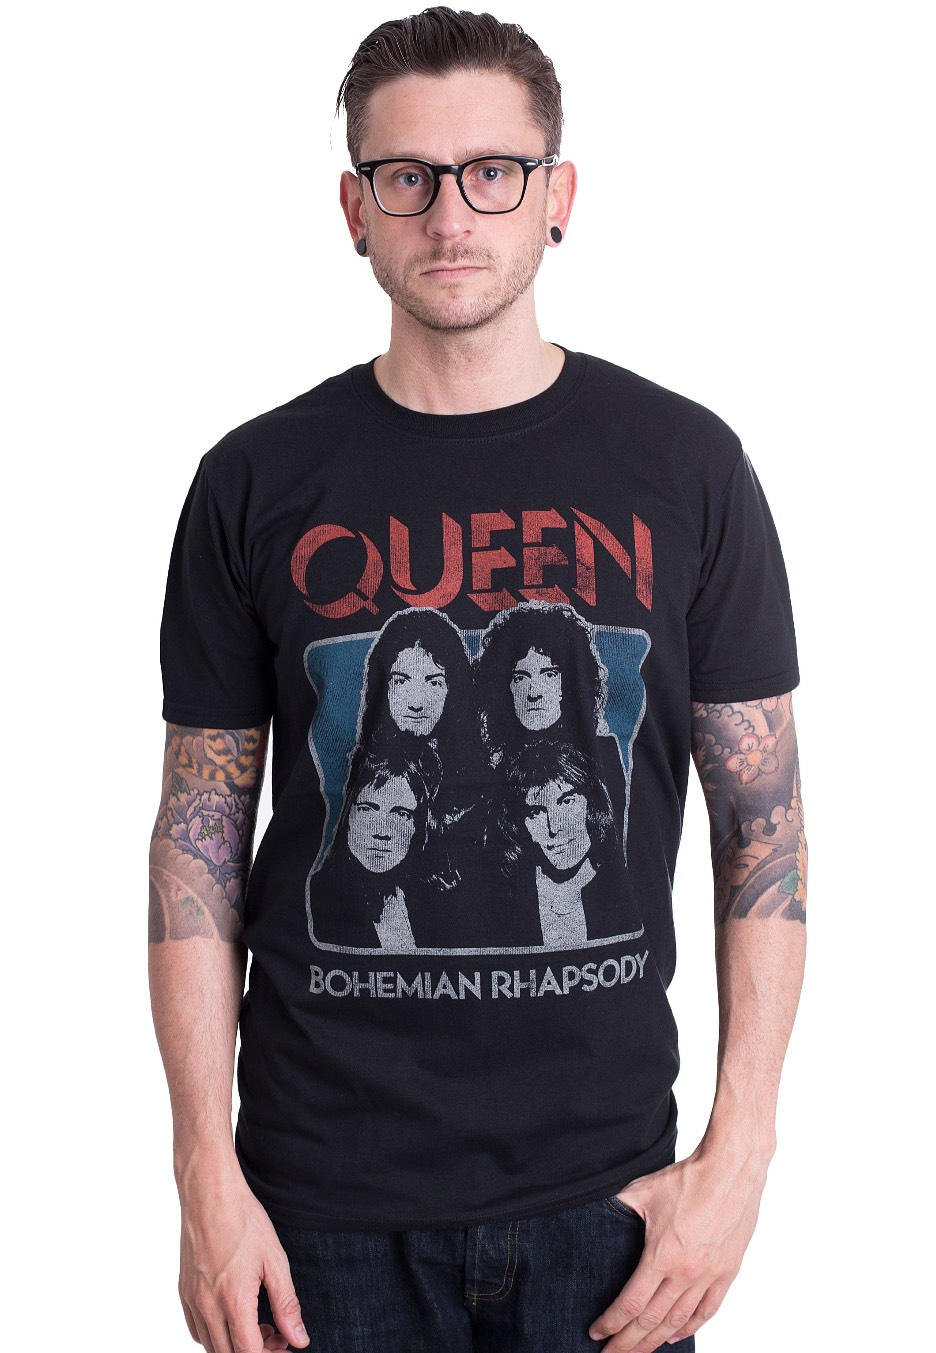 Queen - Bohemian Rhapsody - T-Shirt